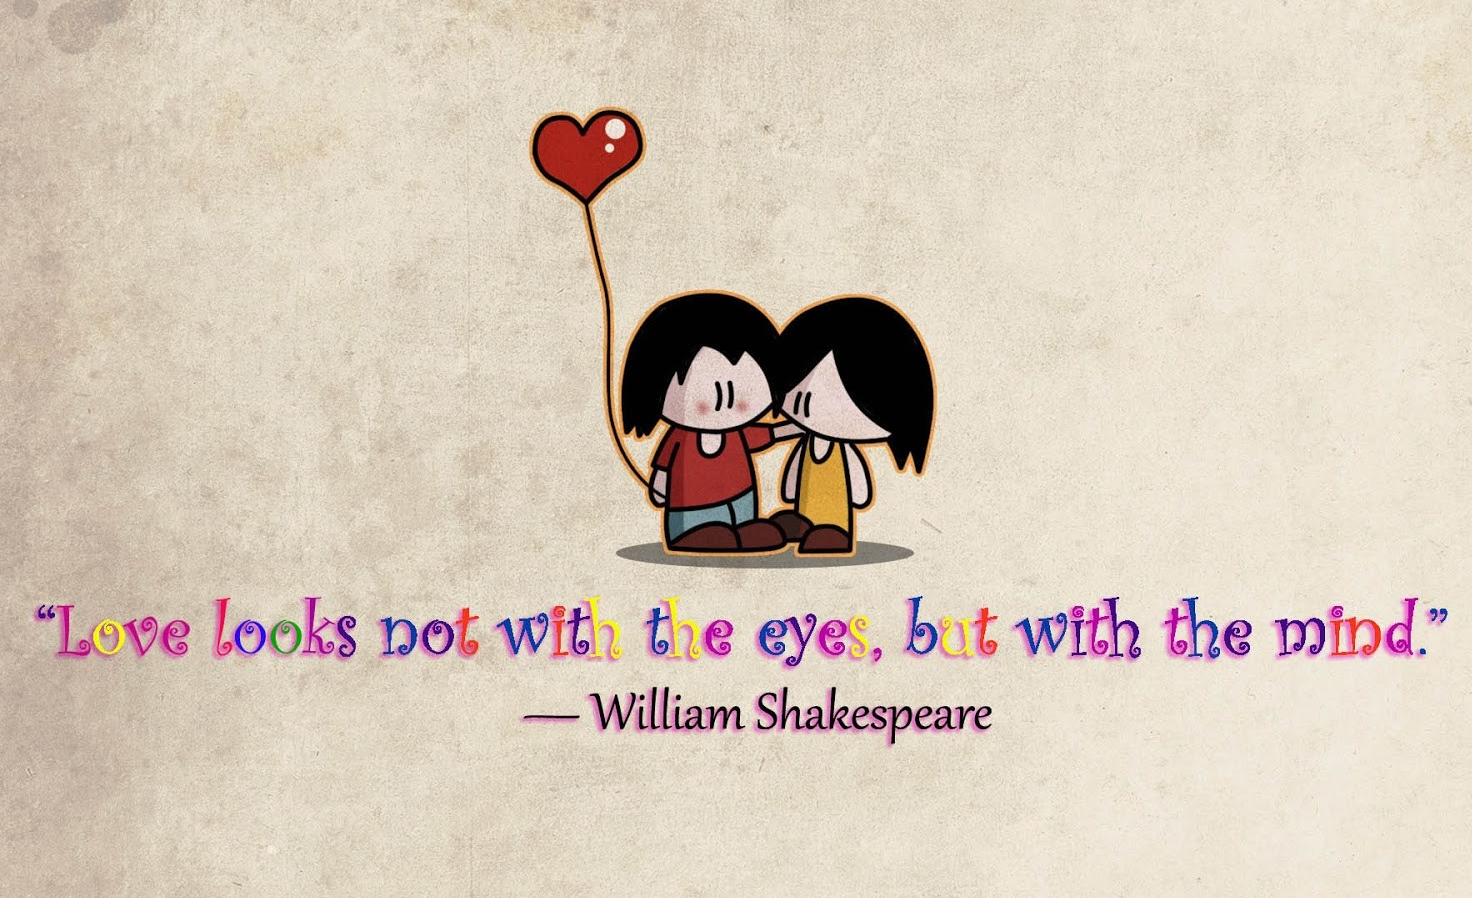 love-looks-not-with-the-eyes-but-with-the-mind..jpg